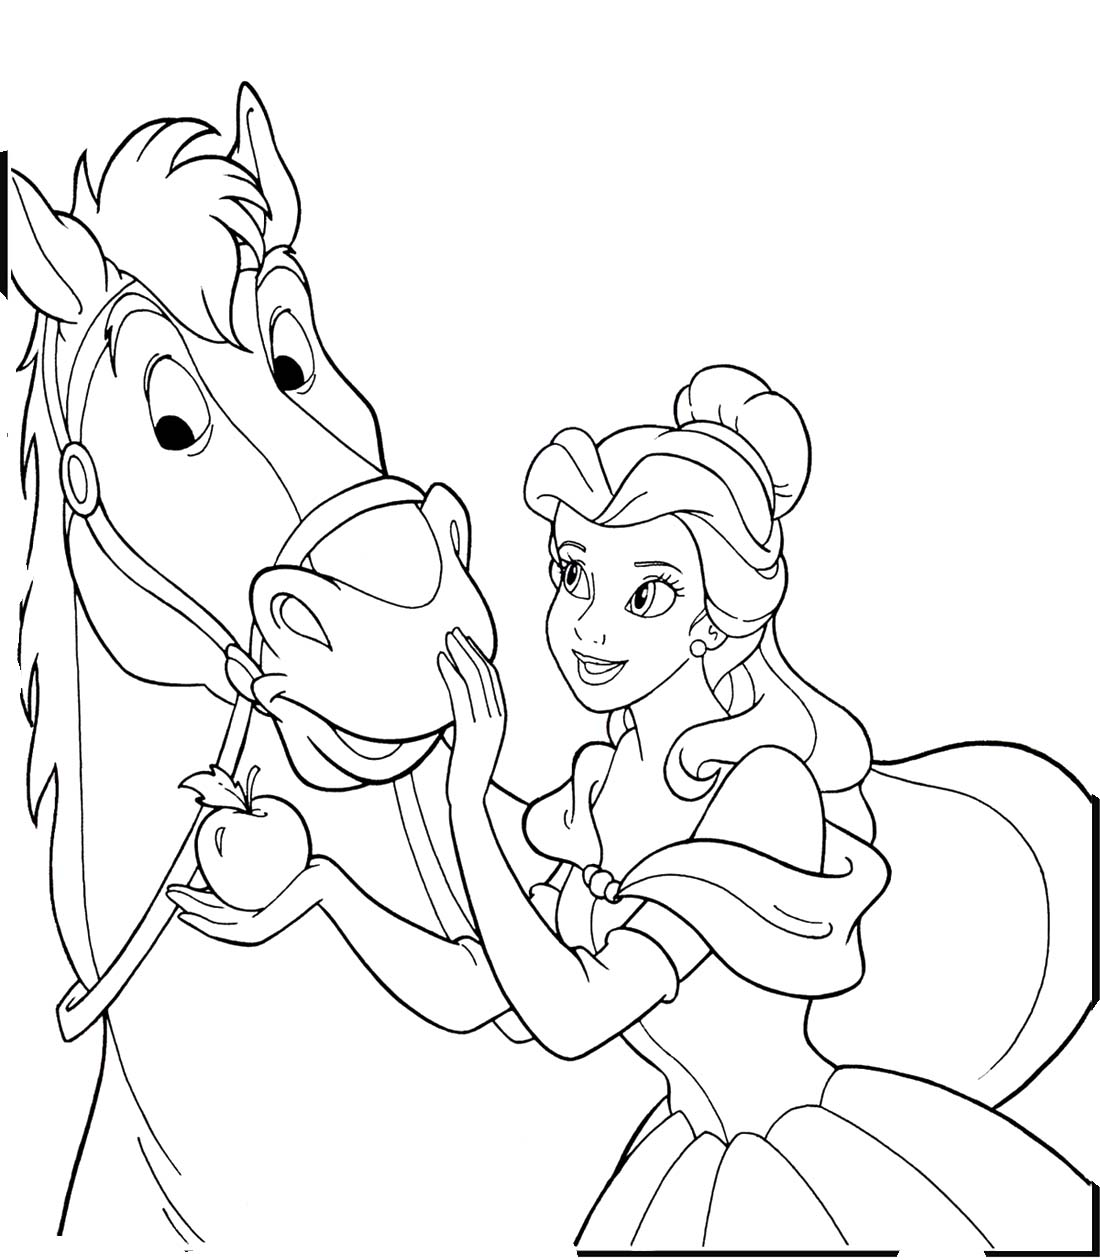 Coloring Pages Princess Unicorn : Unicorn and princess coloring pages az